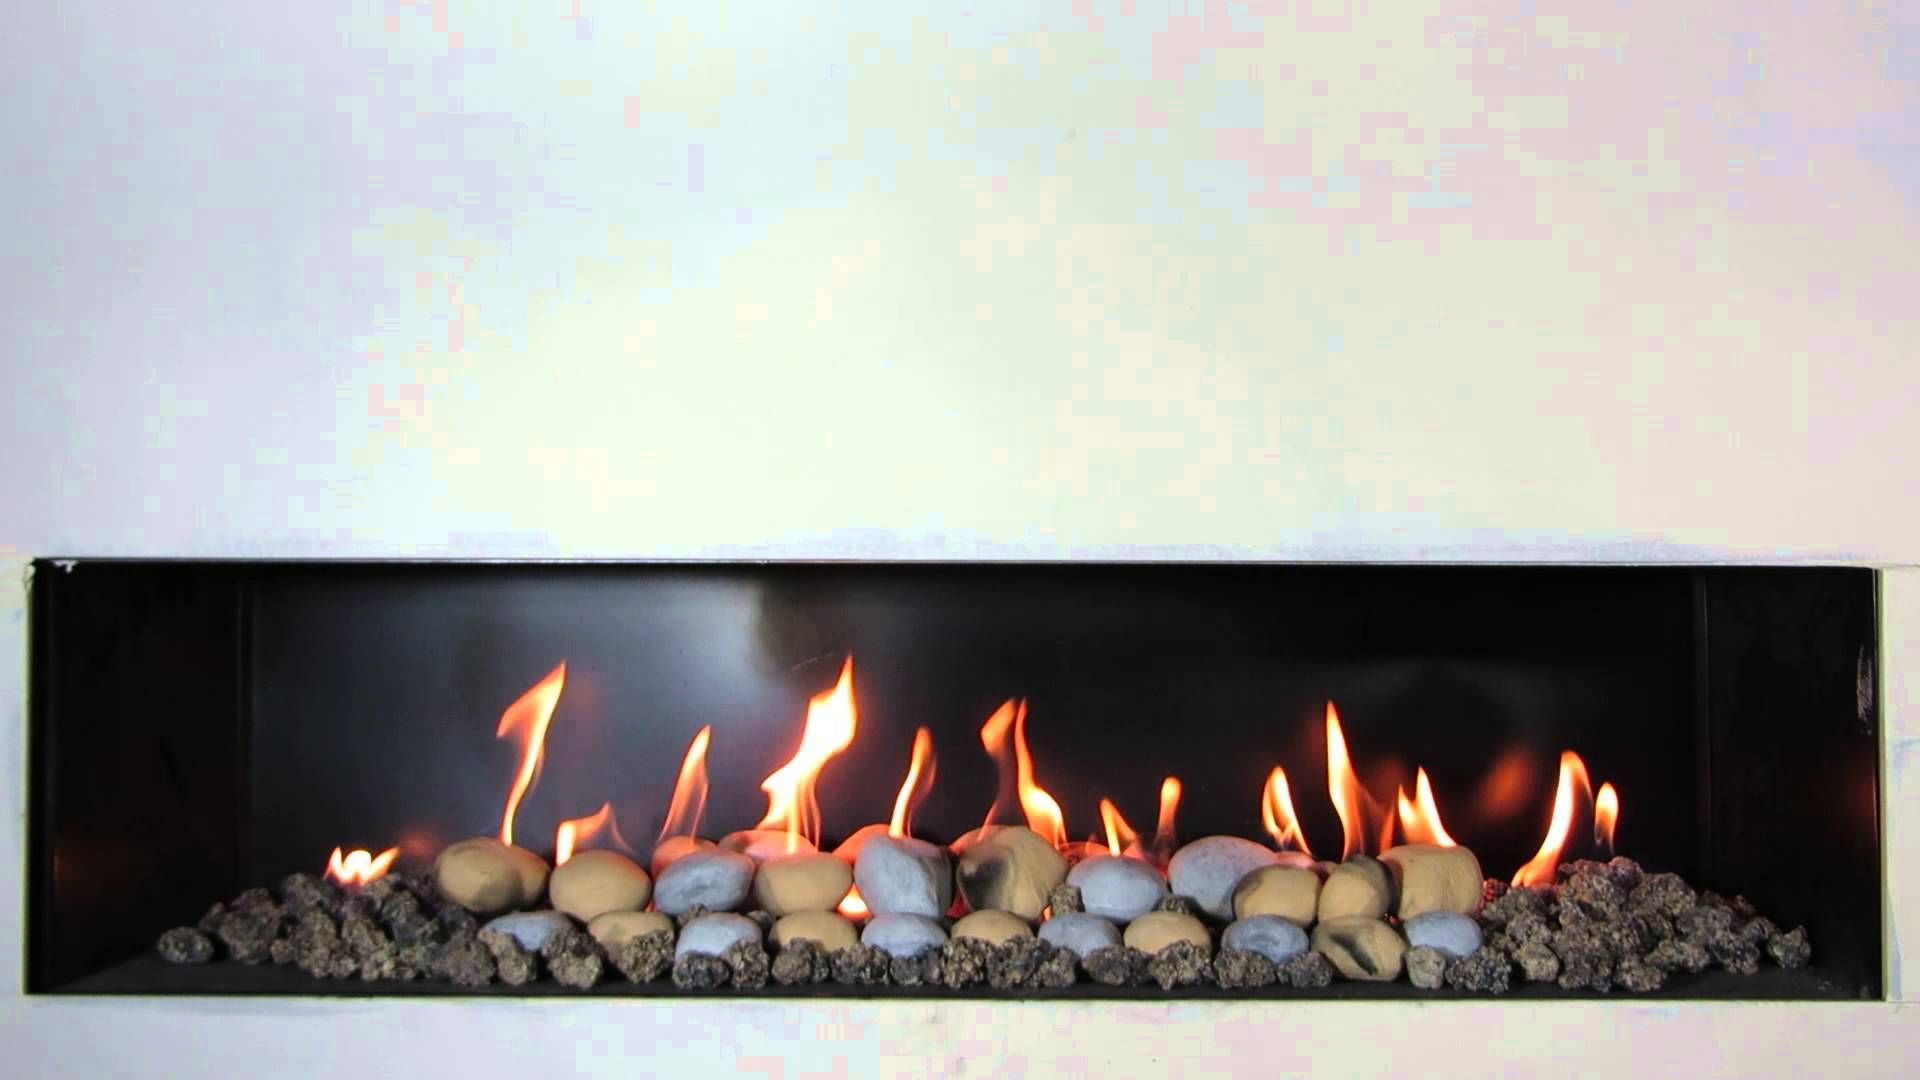 Fire Stones For Fireplace Image Result For Fire Stones For Gas Fireplace Dining Room